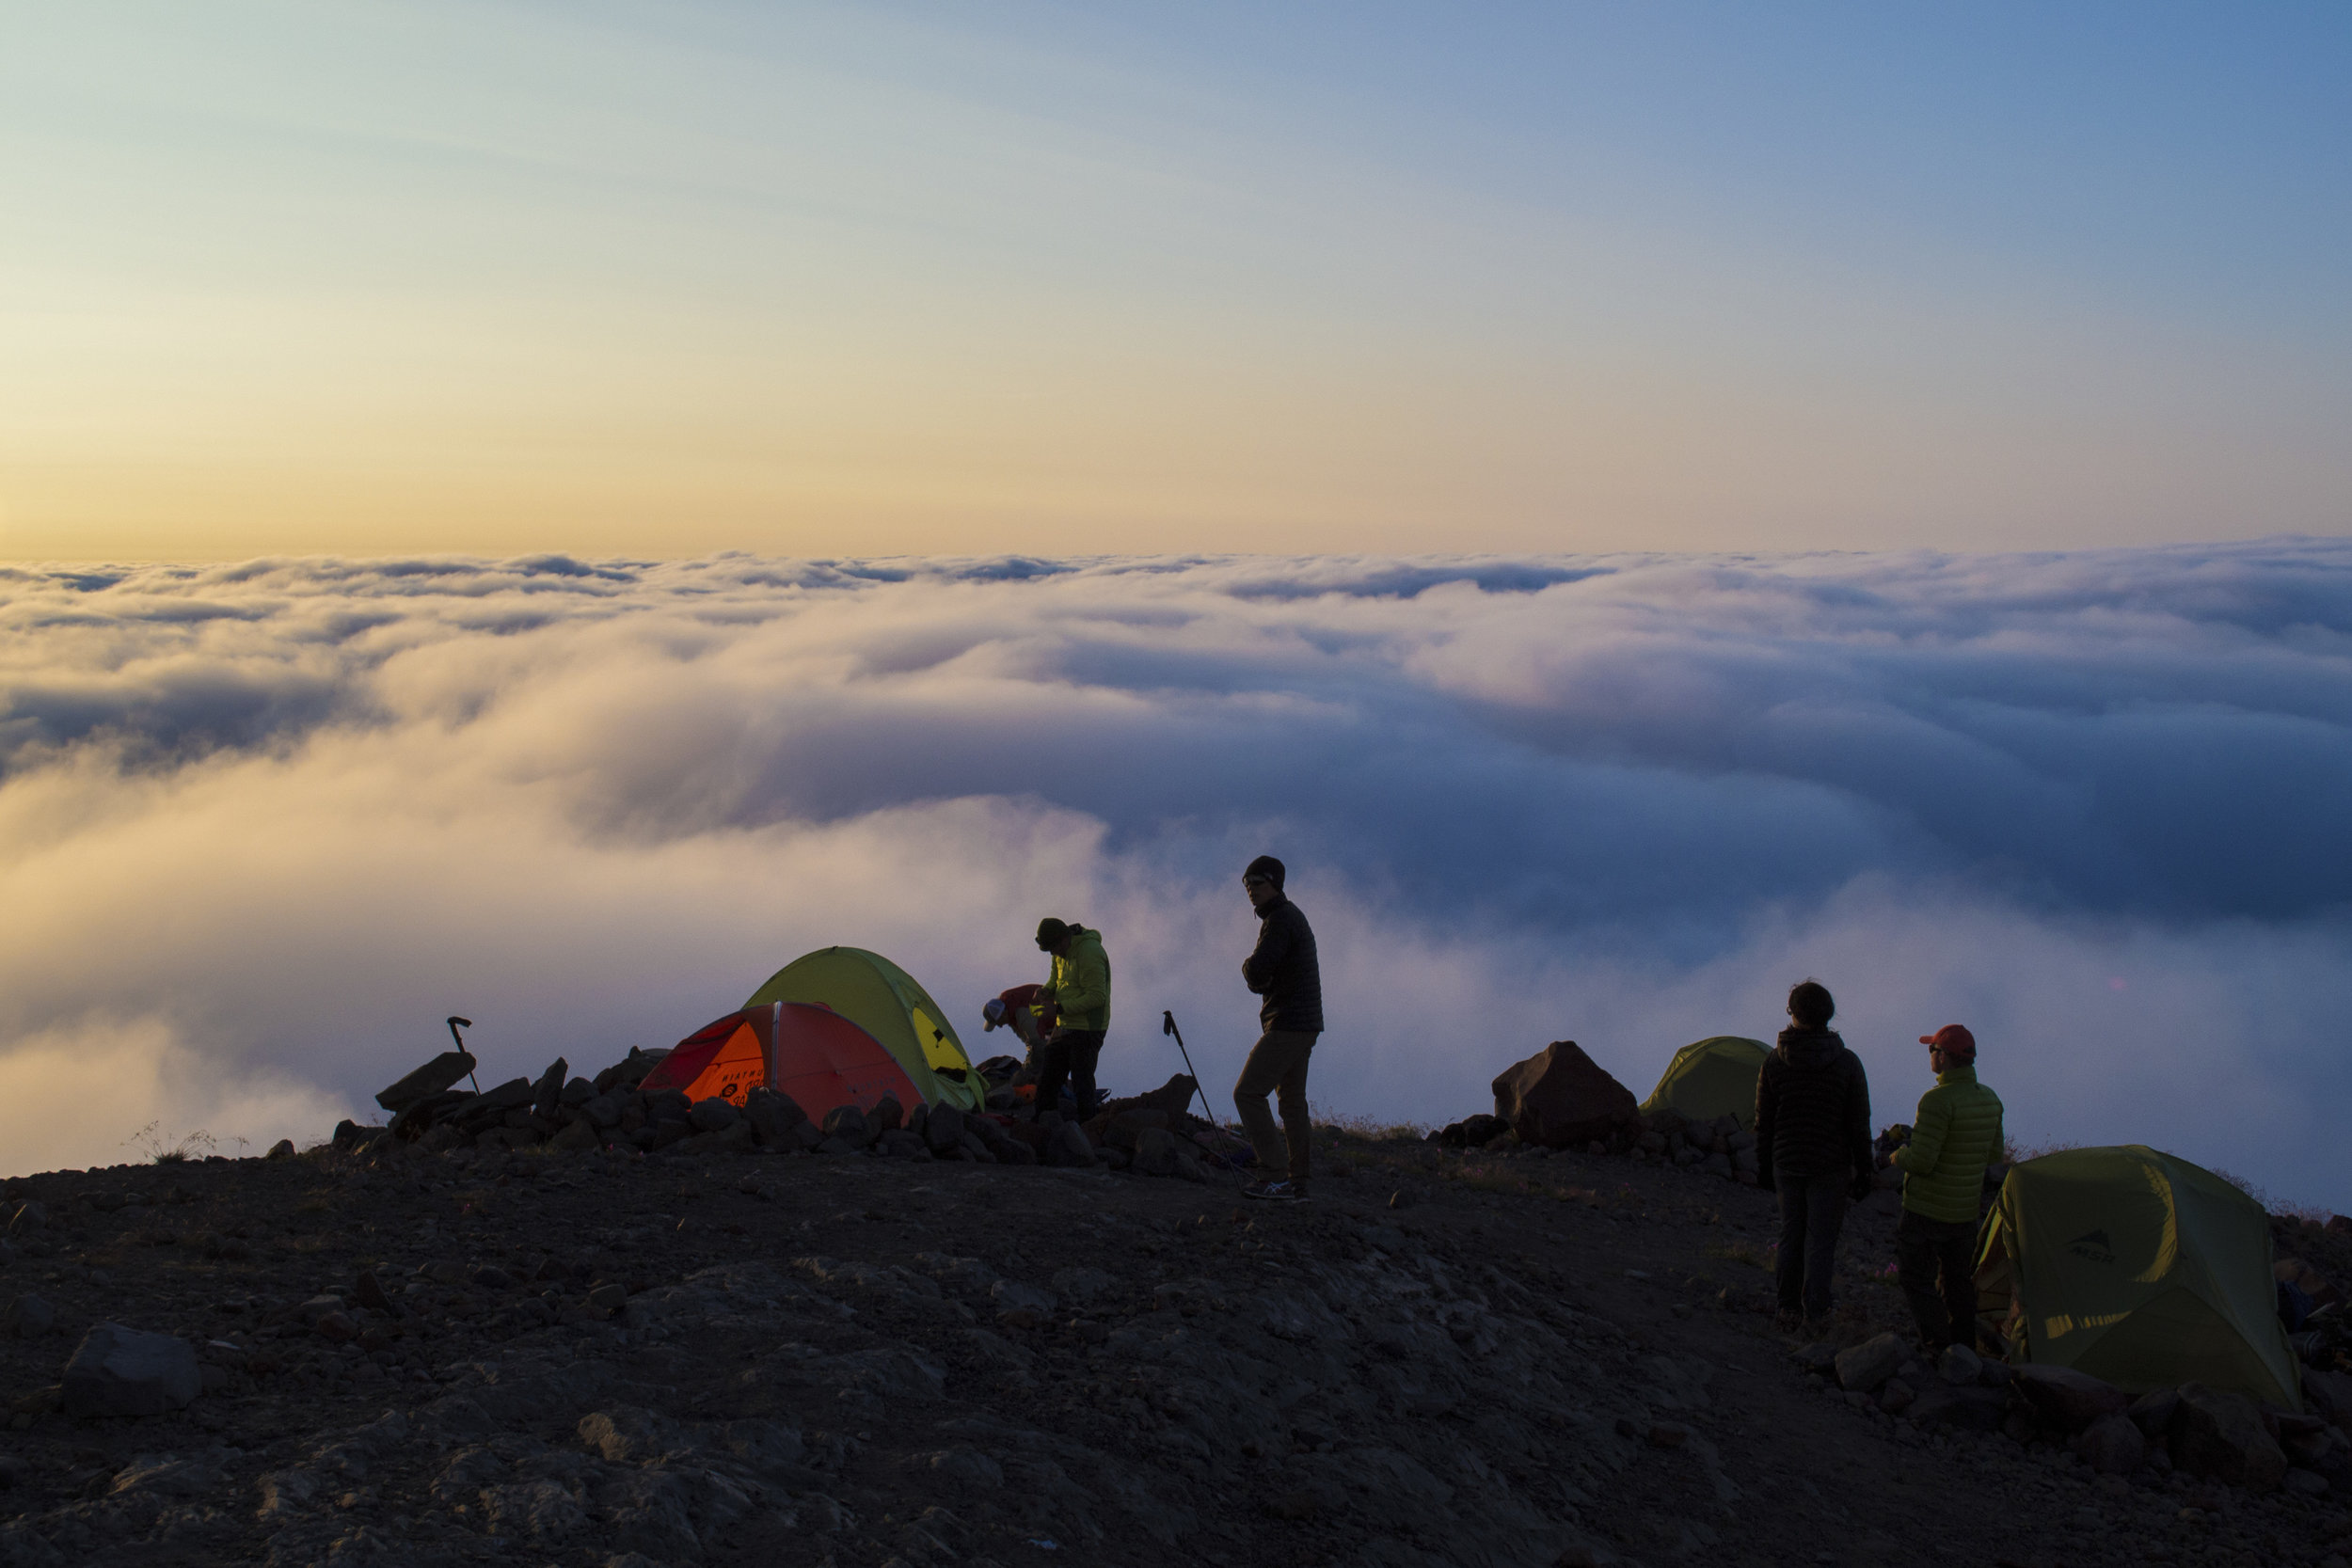 Summer camping and hiking in the Cascades. Photo by Jacob Hall.